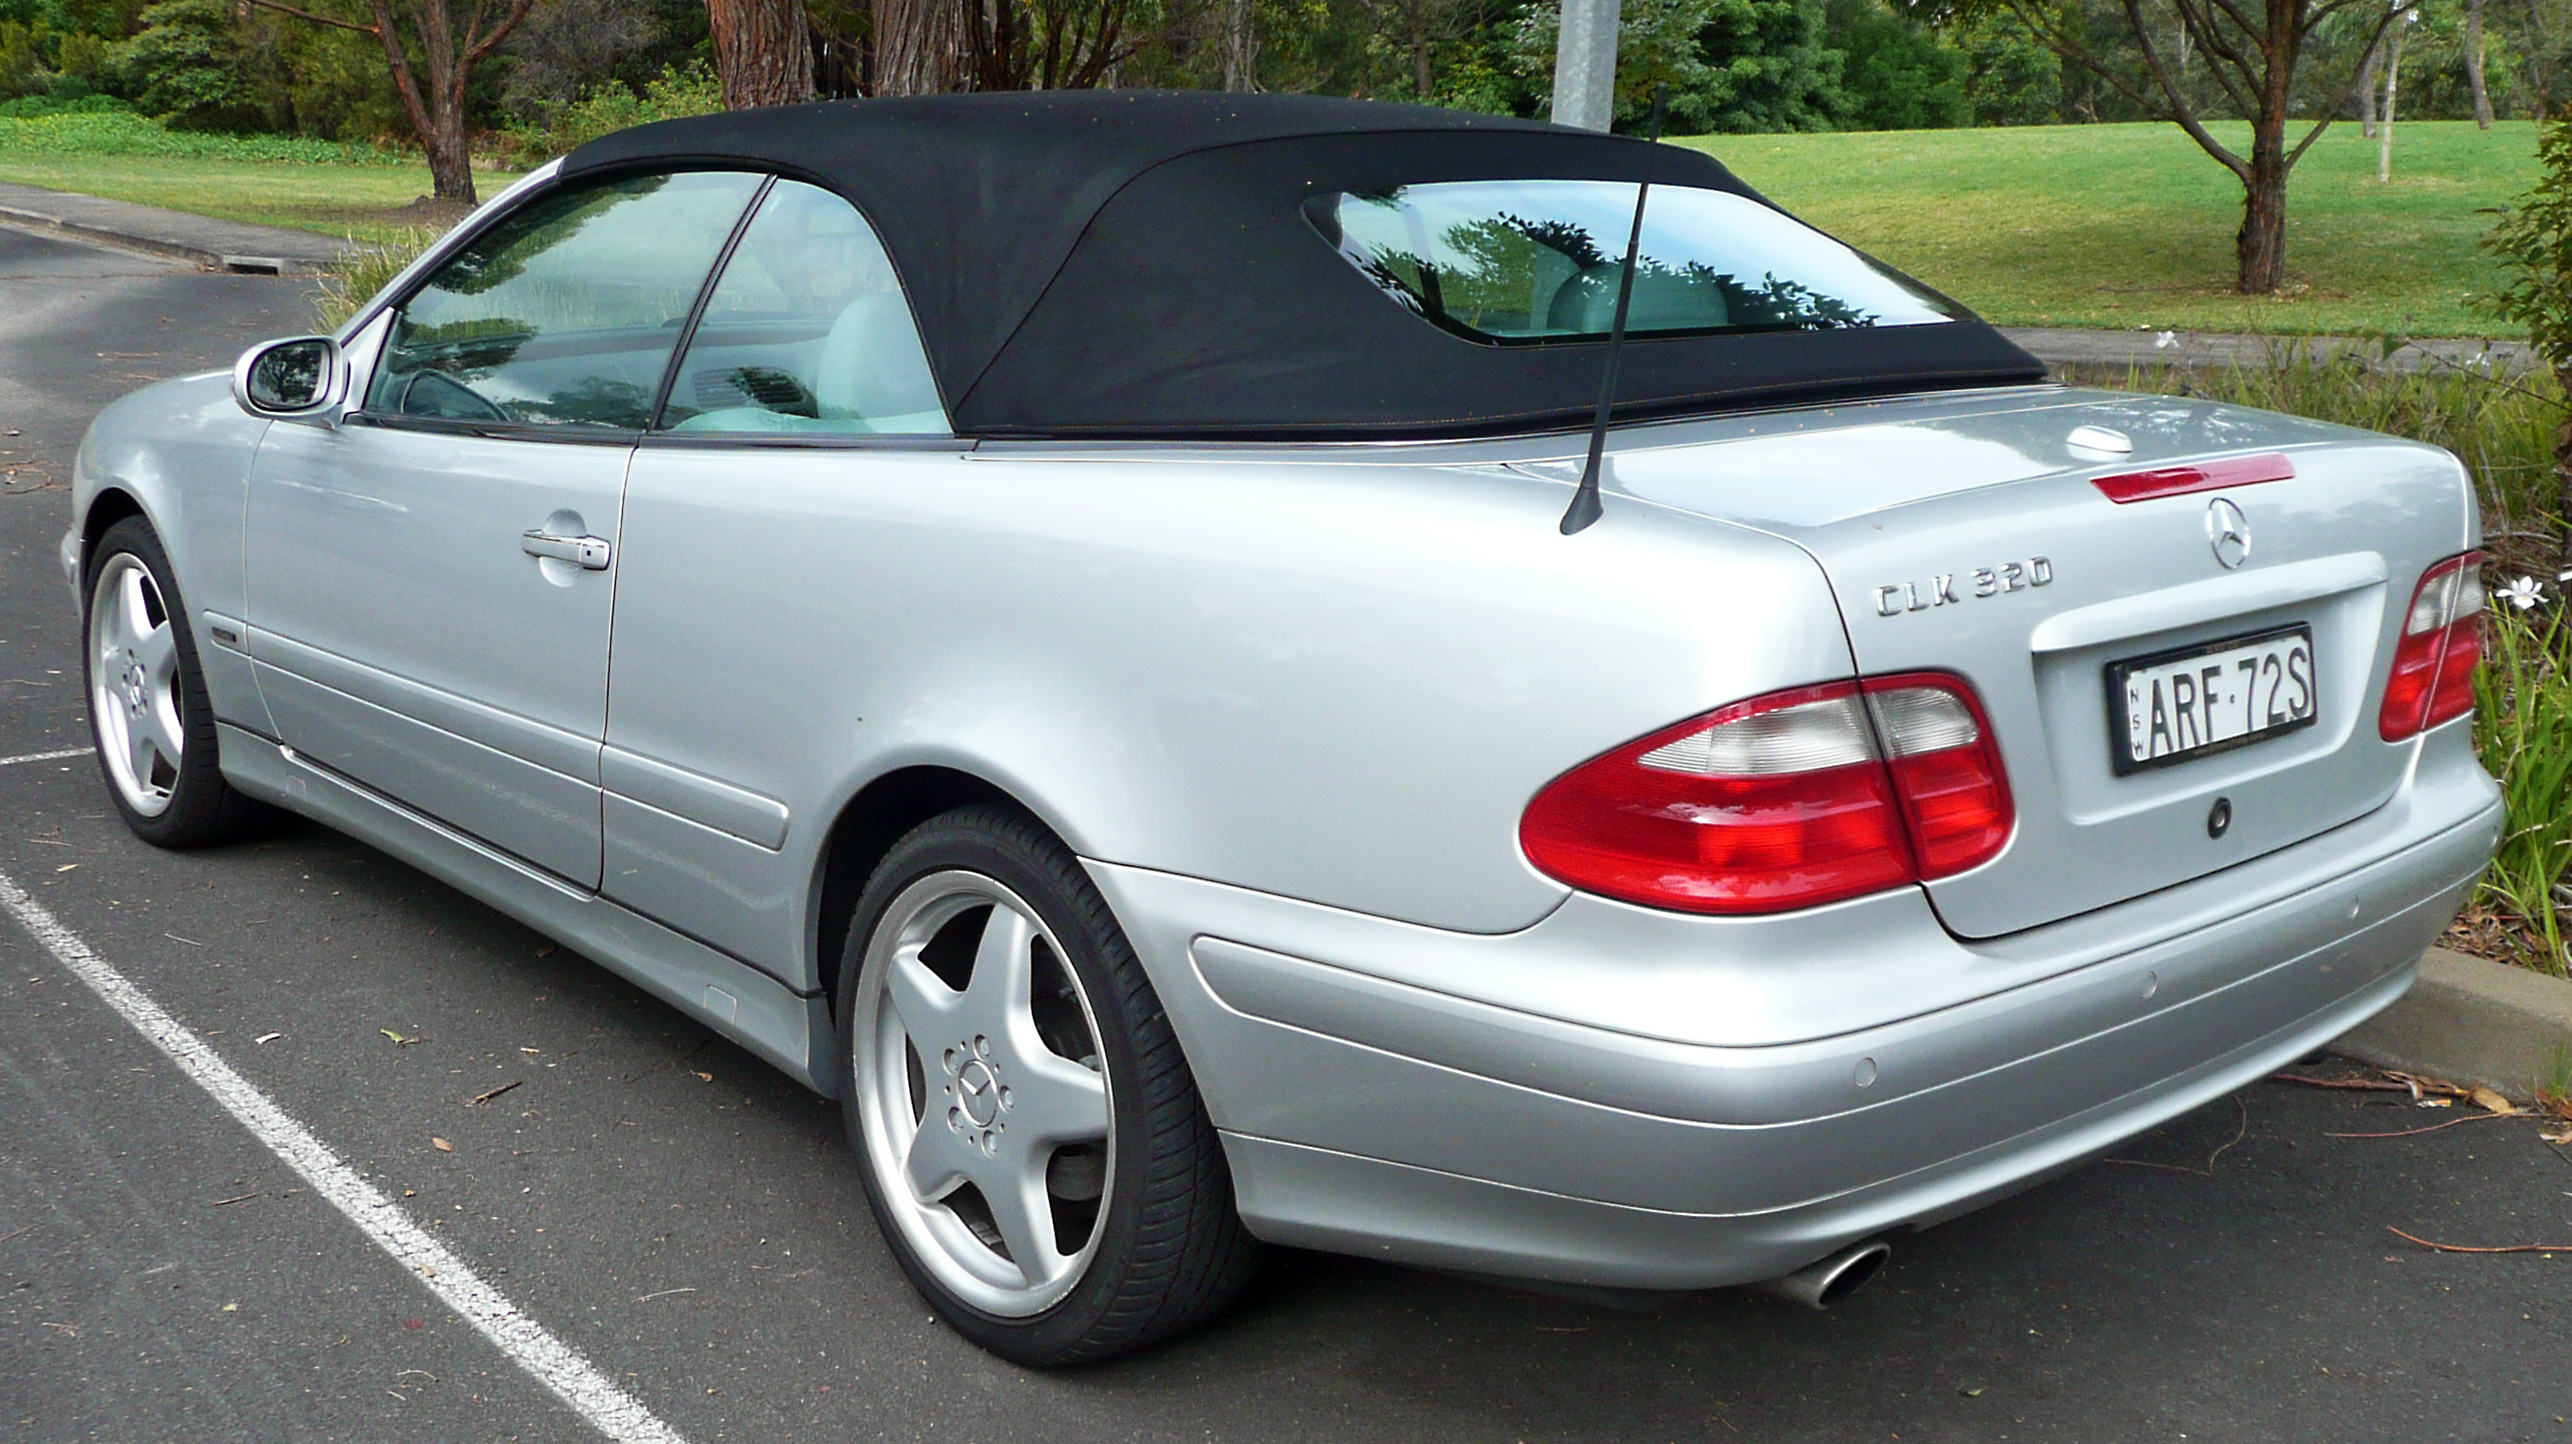 2000 Clk 430 Mercedes Wrecked For Parts 1003710 additionally 31825 2000 Mercedes Clk 430 Amg besides 2002 Mercedes Benz CLK Class Pictures C6138 further 245823 Drivers Door Close Assist Feature Not Working 3 together with Autopart. on 2000 mercedes clk 430 convertible for sale